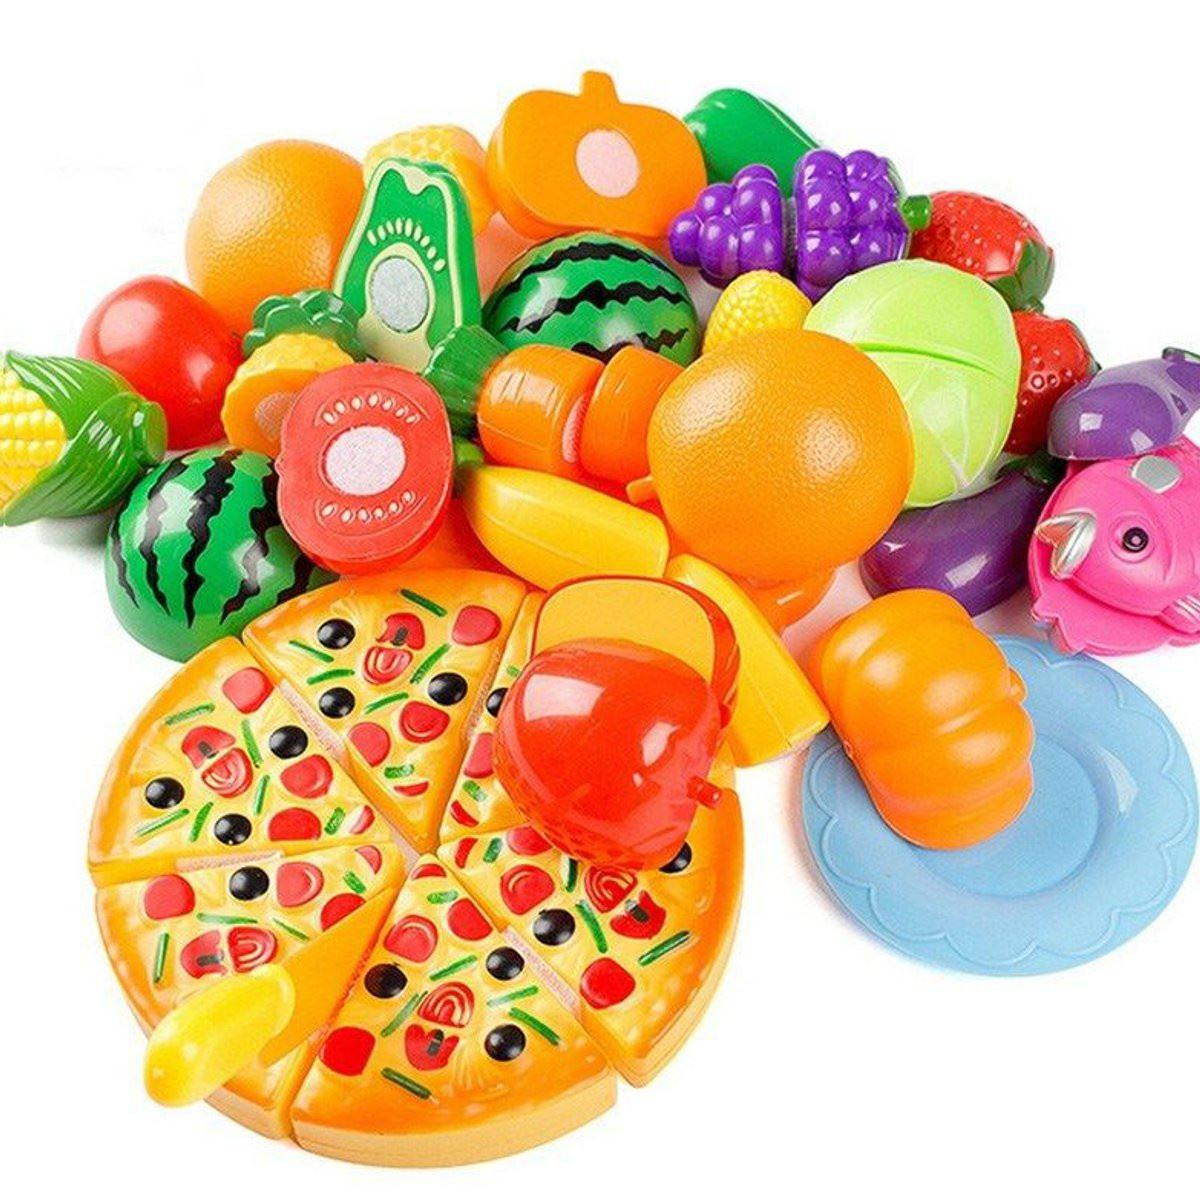 24Pcs/Set Kitchen Pretend Play Toys Vegetable Fruits Children Early Education Set Favor Supplies Kids Classic Toys Brinquedos(China (Mainland))